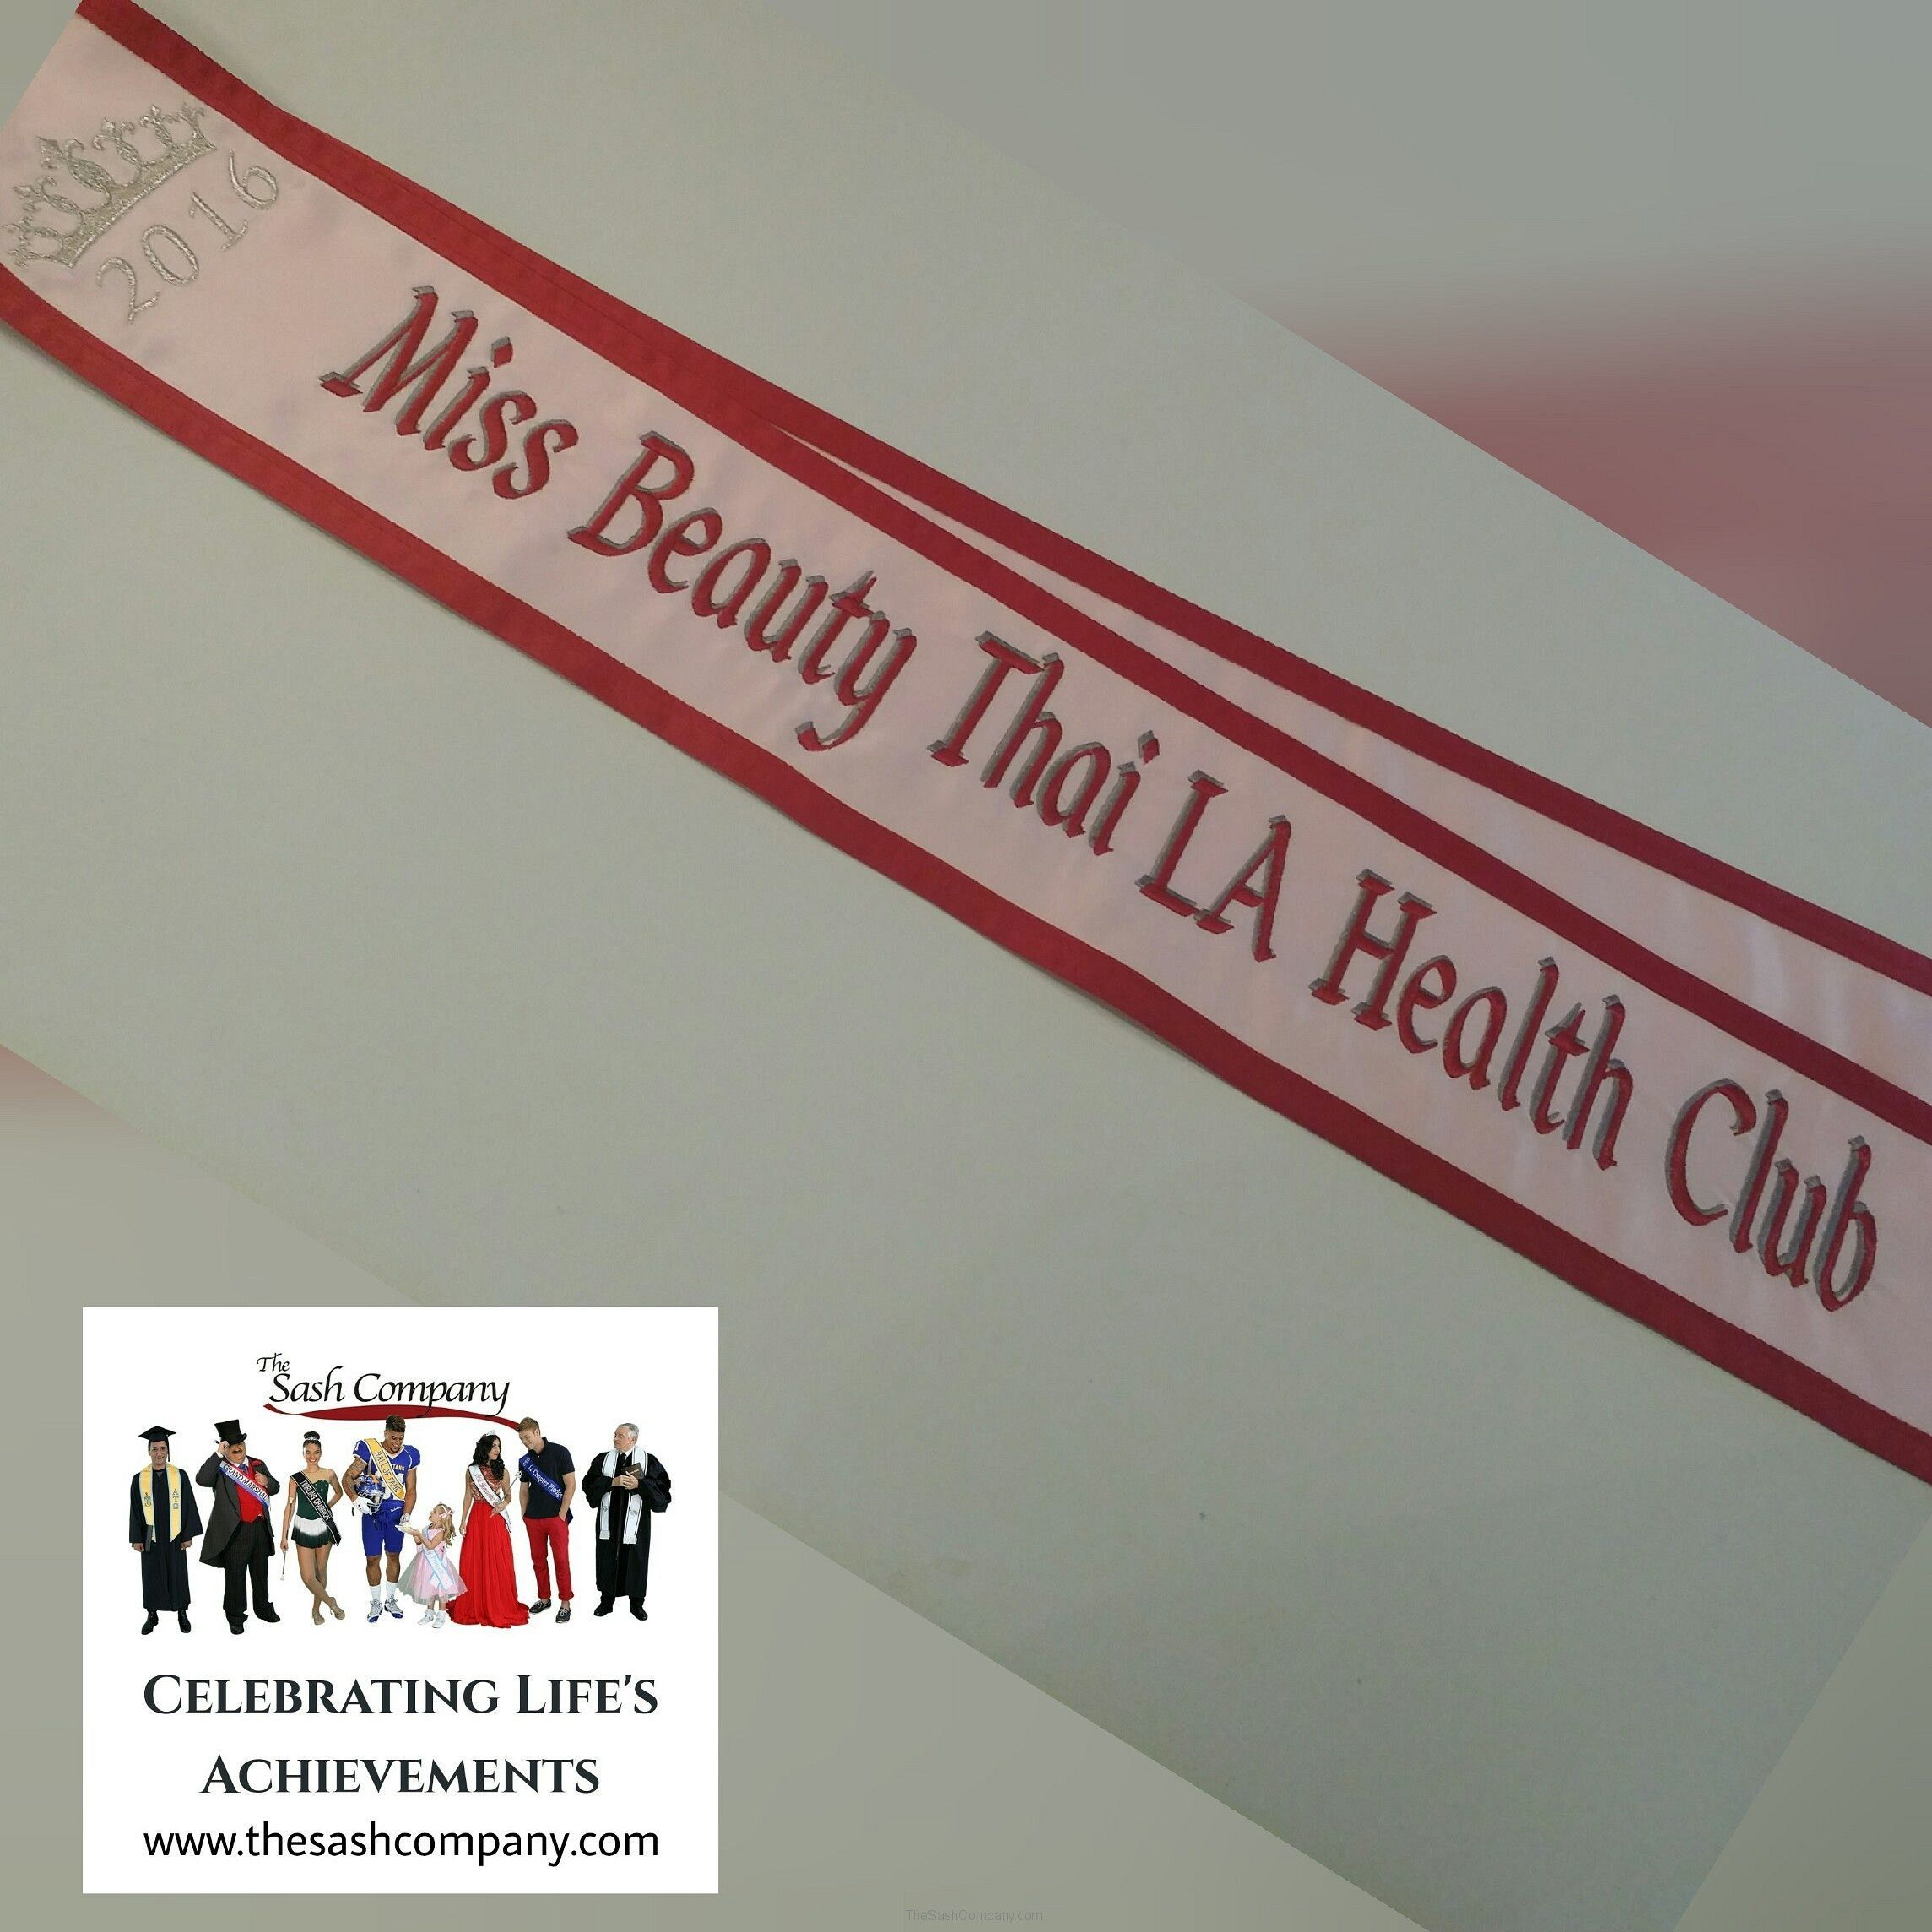 LA Health Club, Miss Beauty Thai Pageant Sash